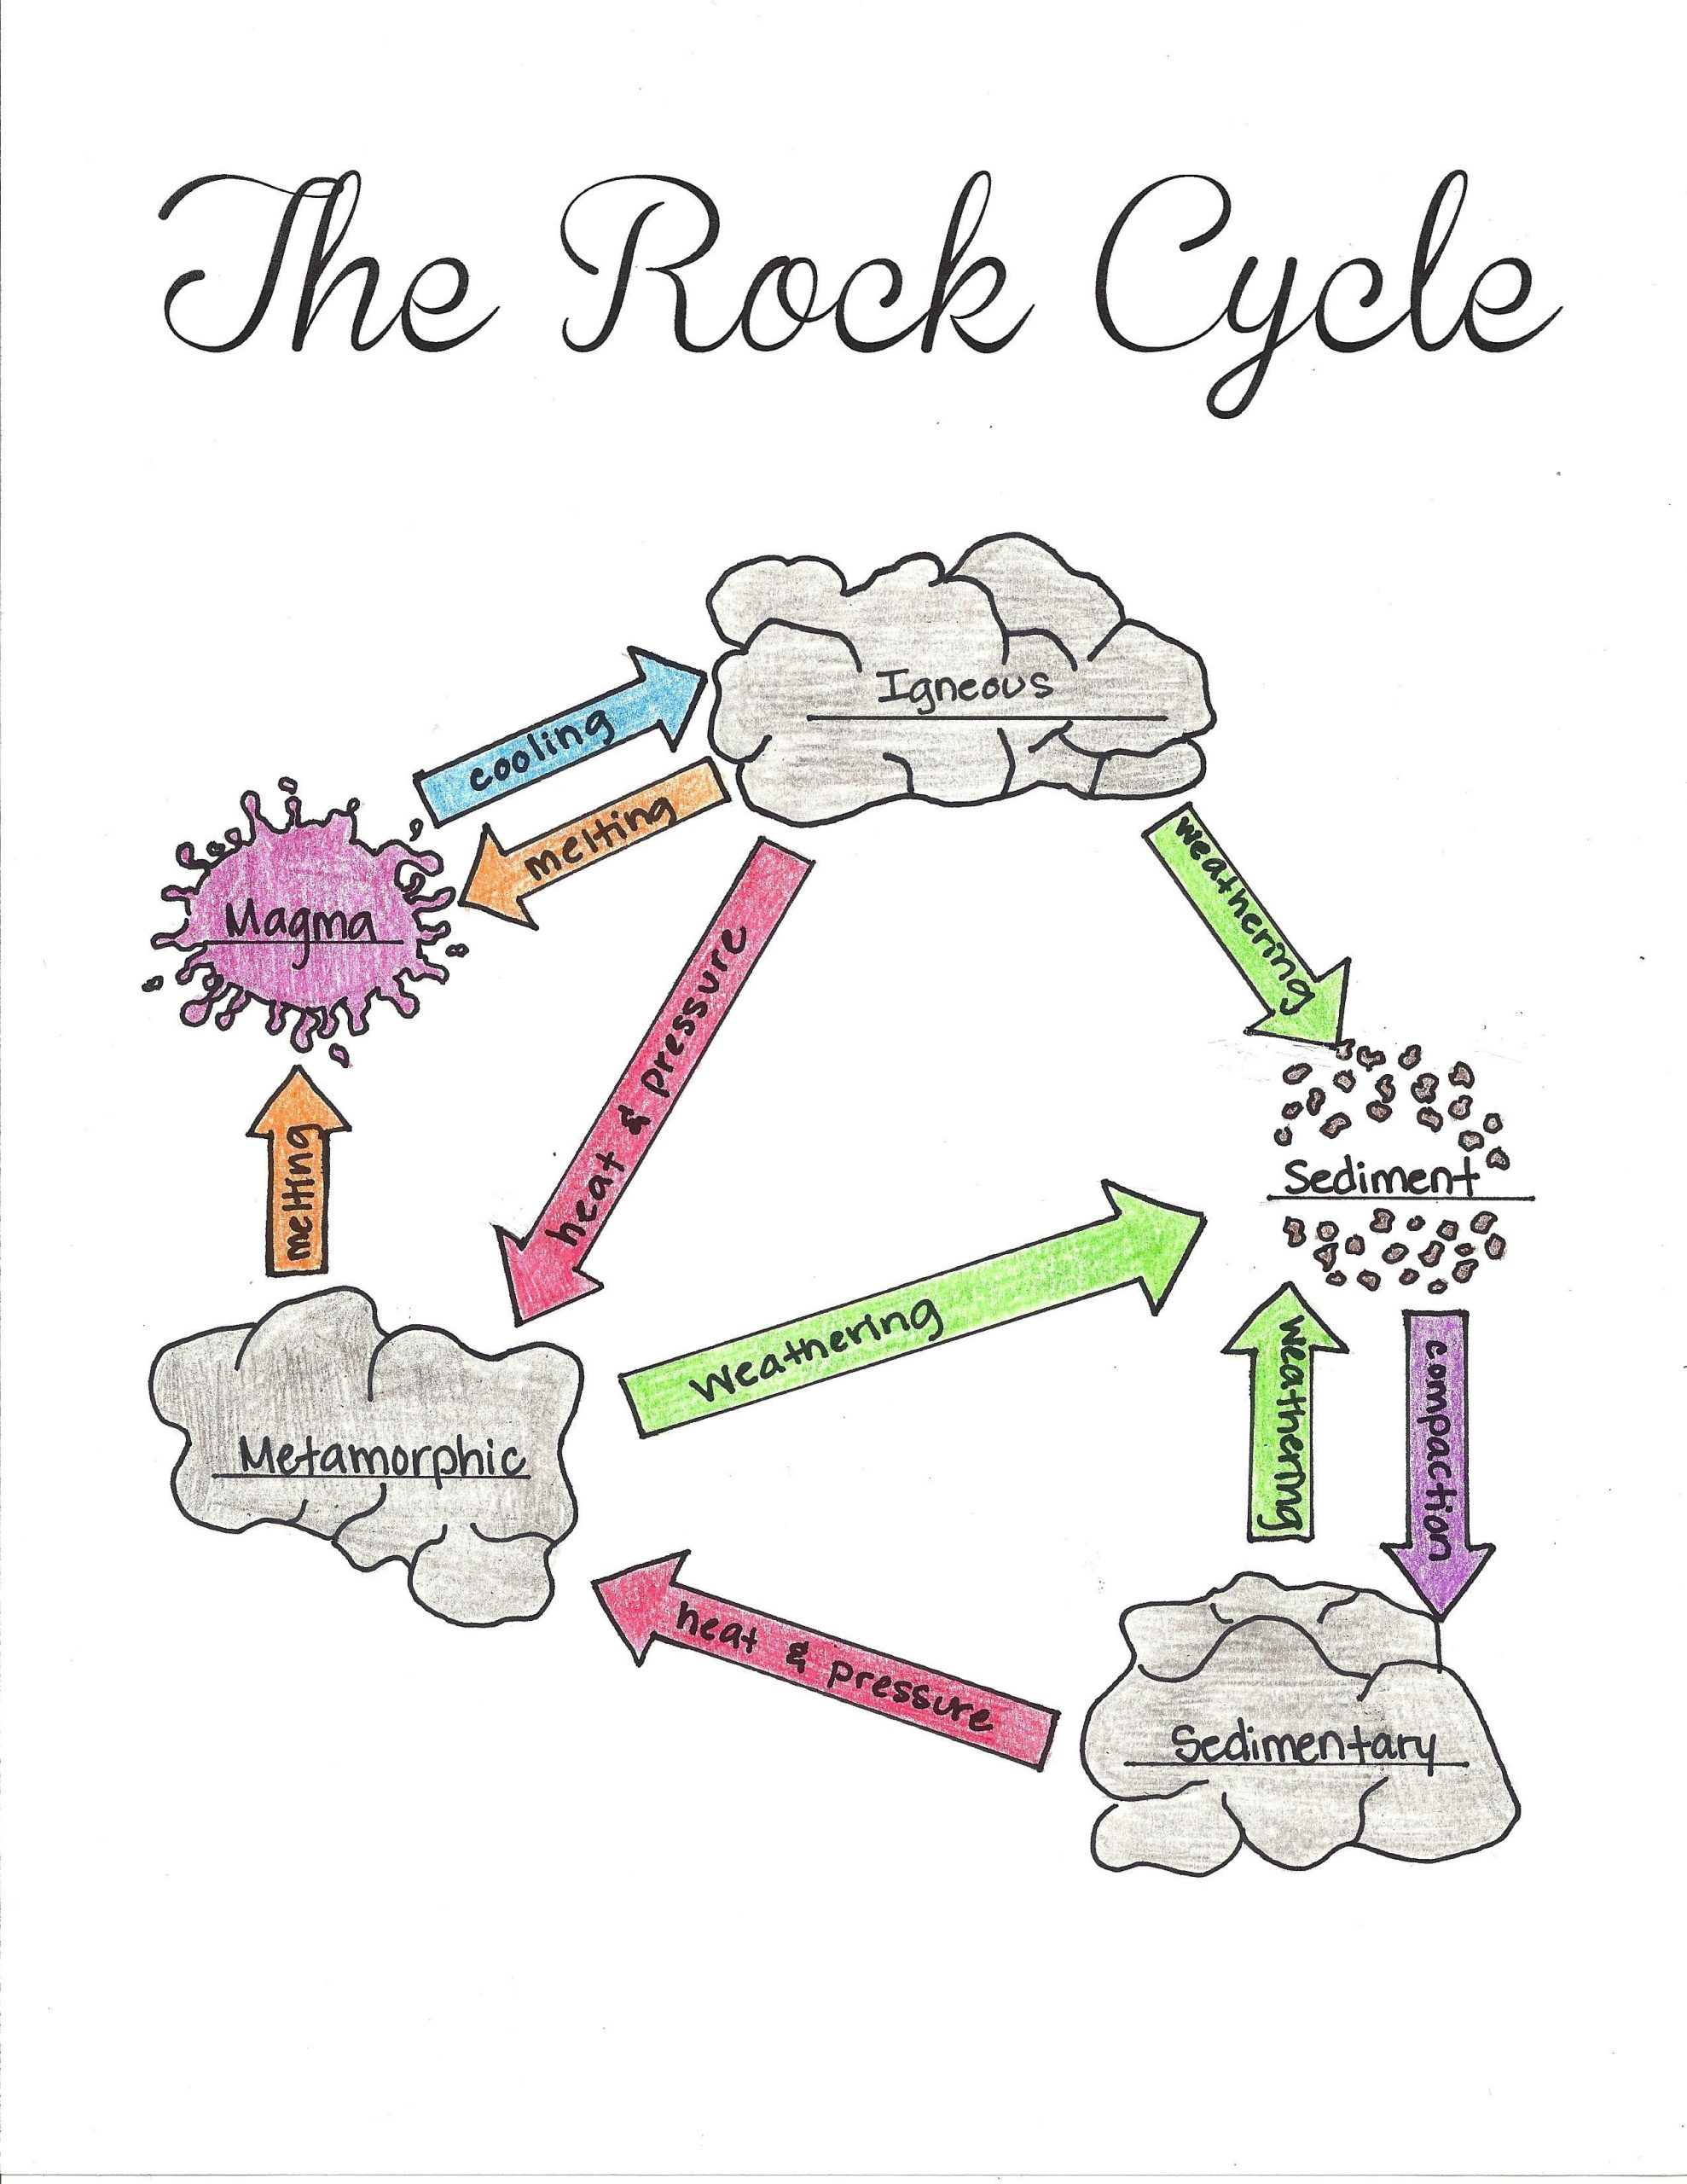 Rock Cycle Worksheet High School Free Printable the Rock Cycle Diagram Fill In Blank